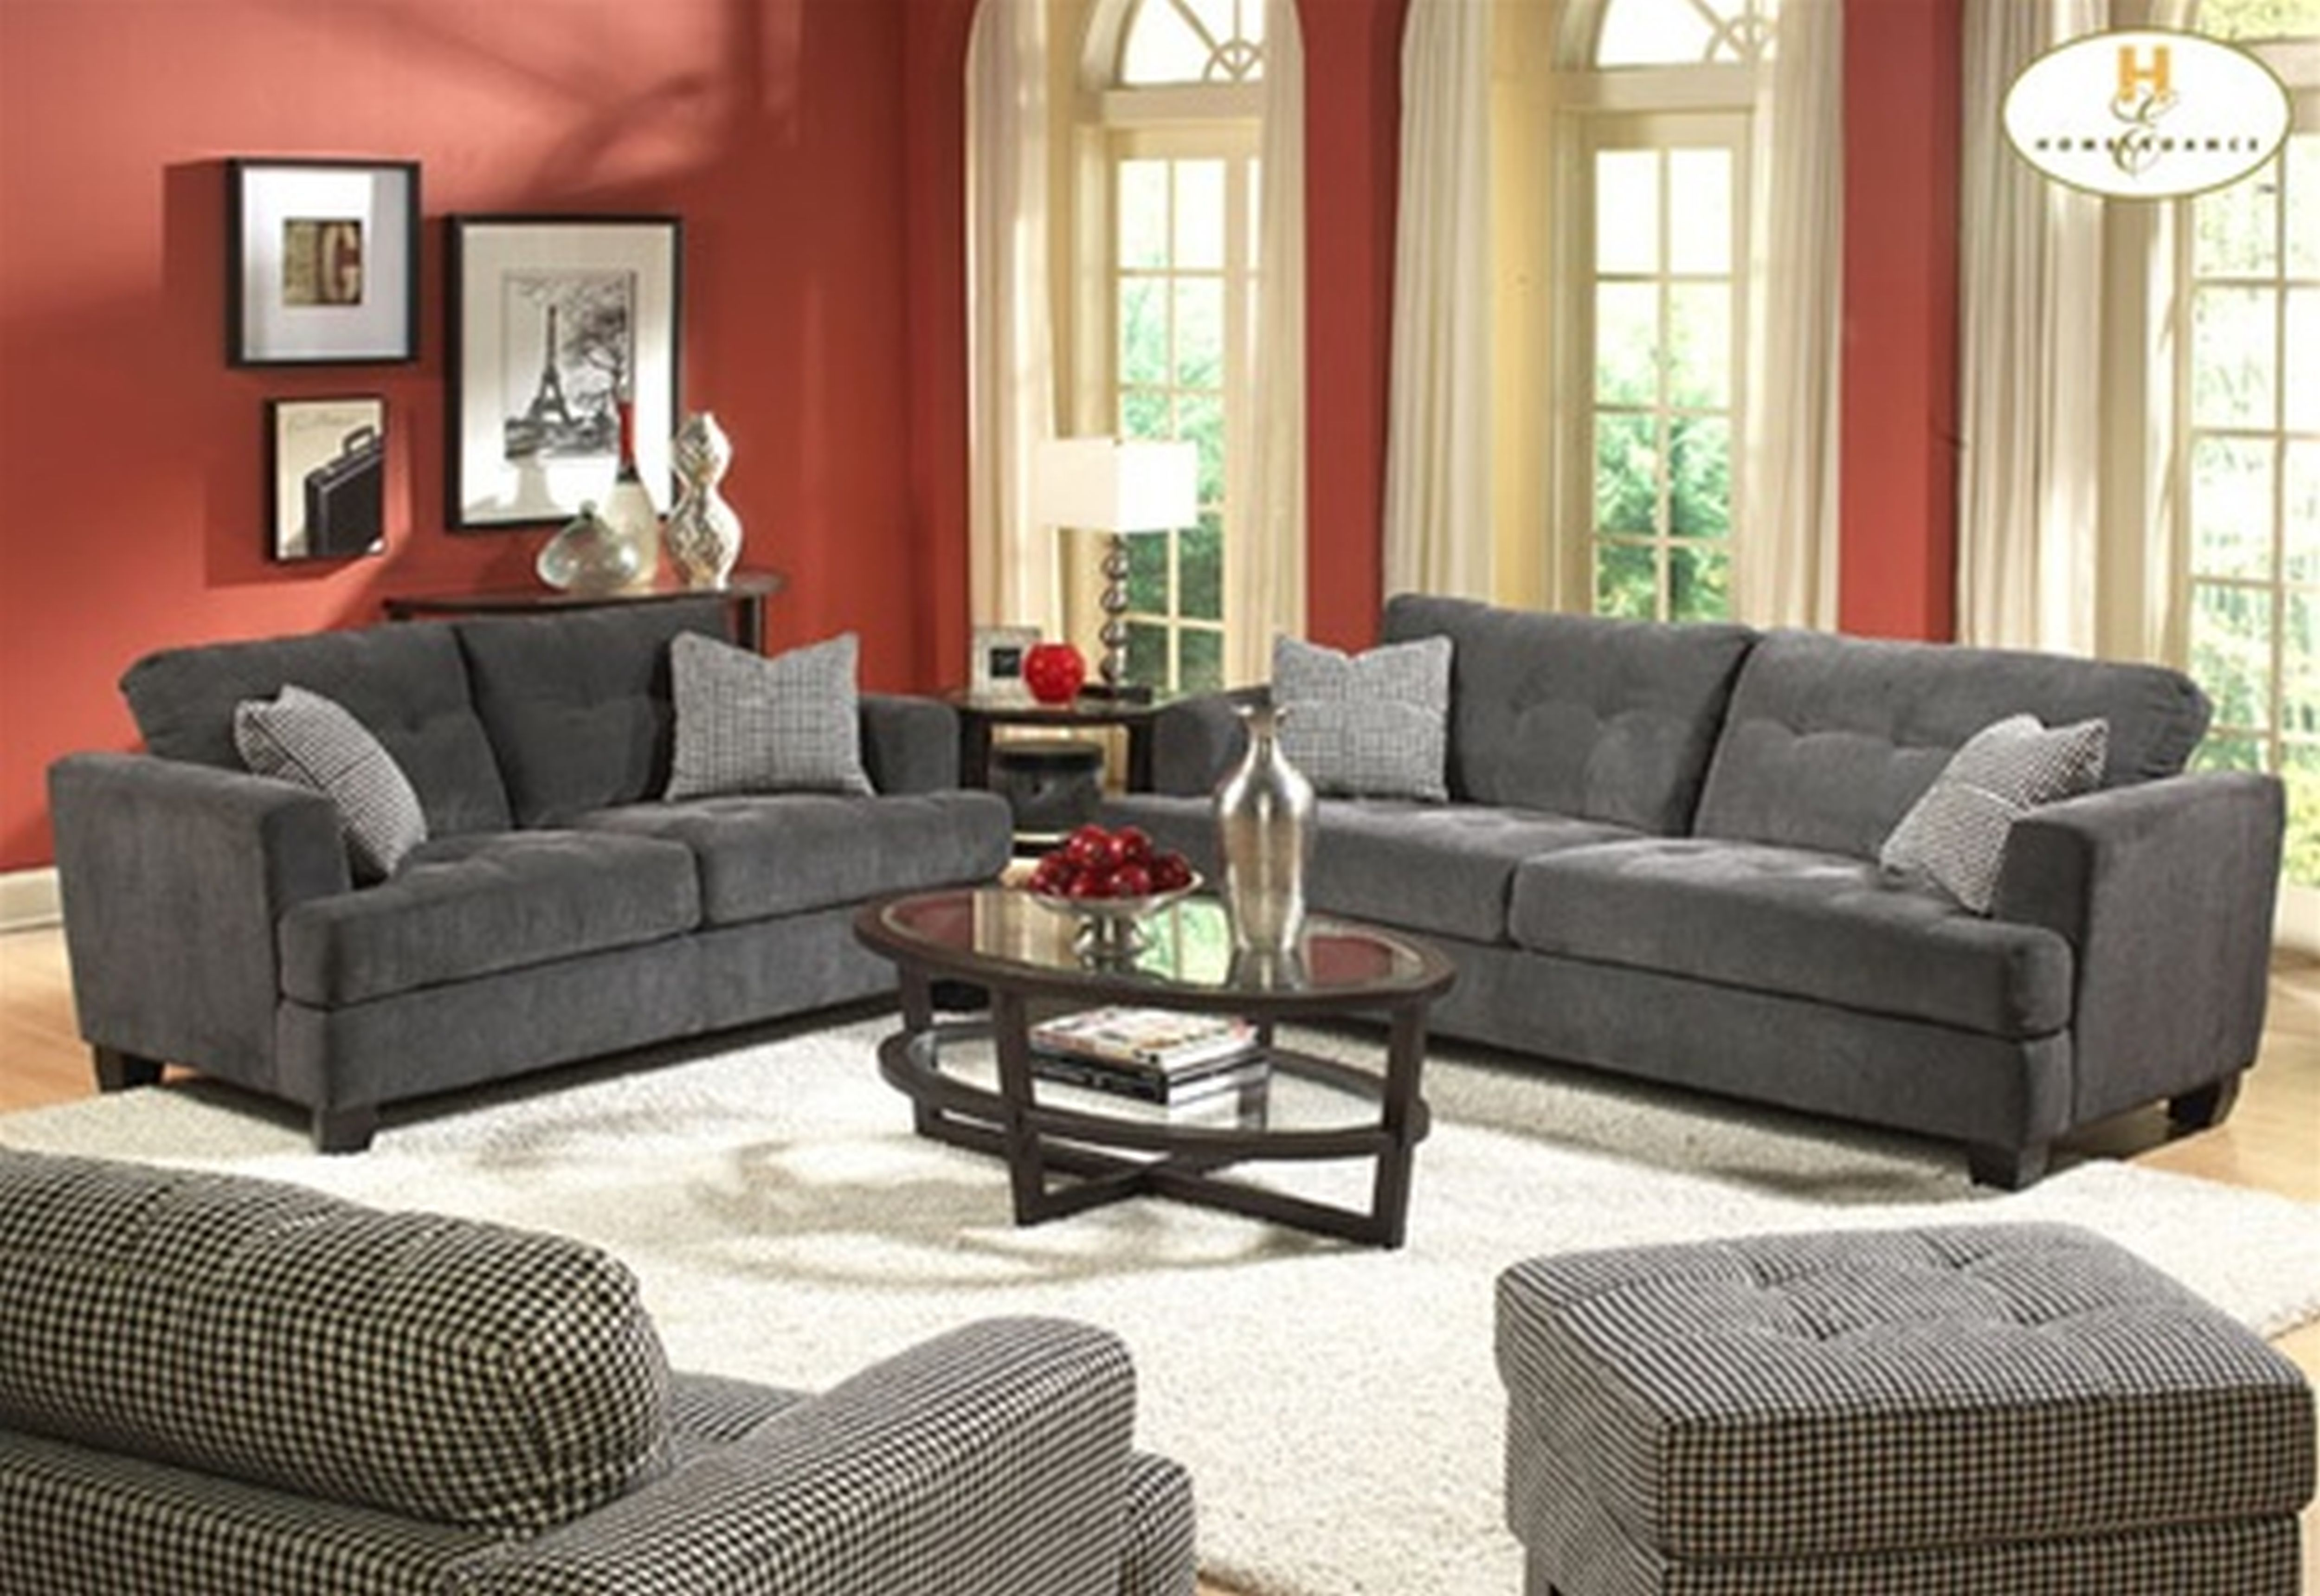 Living Room Red Wall Paint And Grey Sofas Color